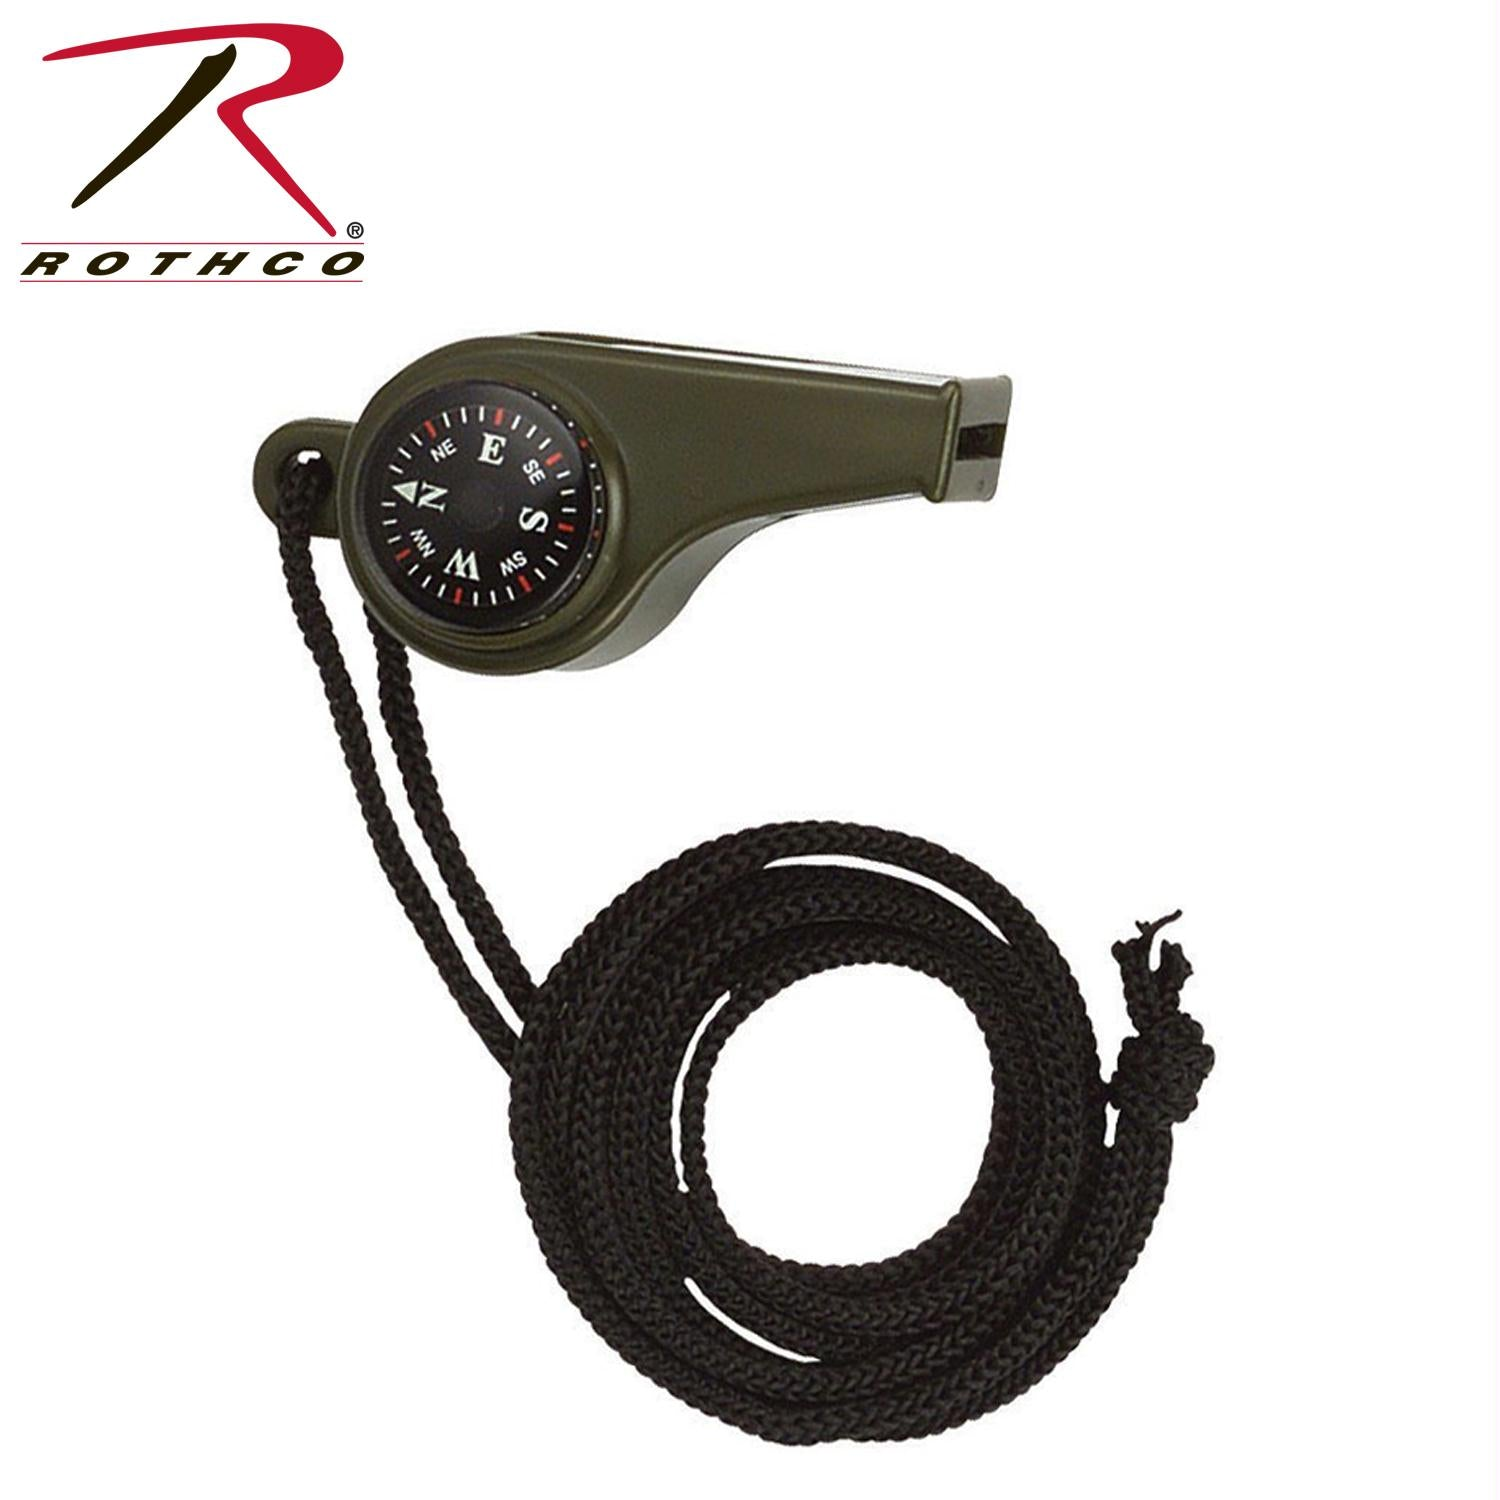 Rothco Super Whistle with Compass & Thermometer